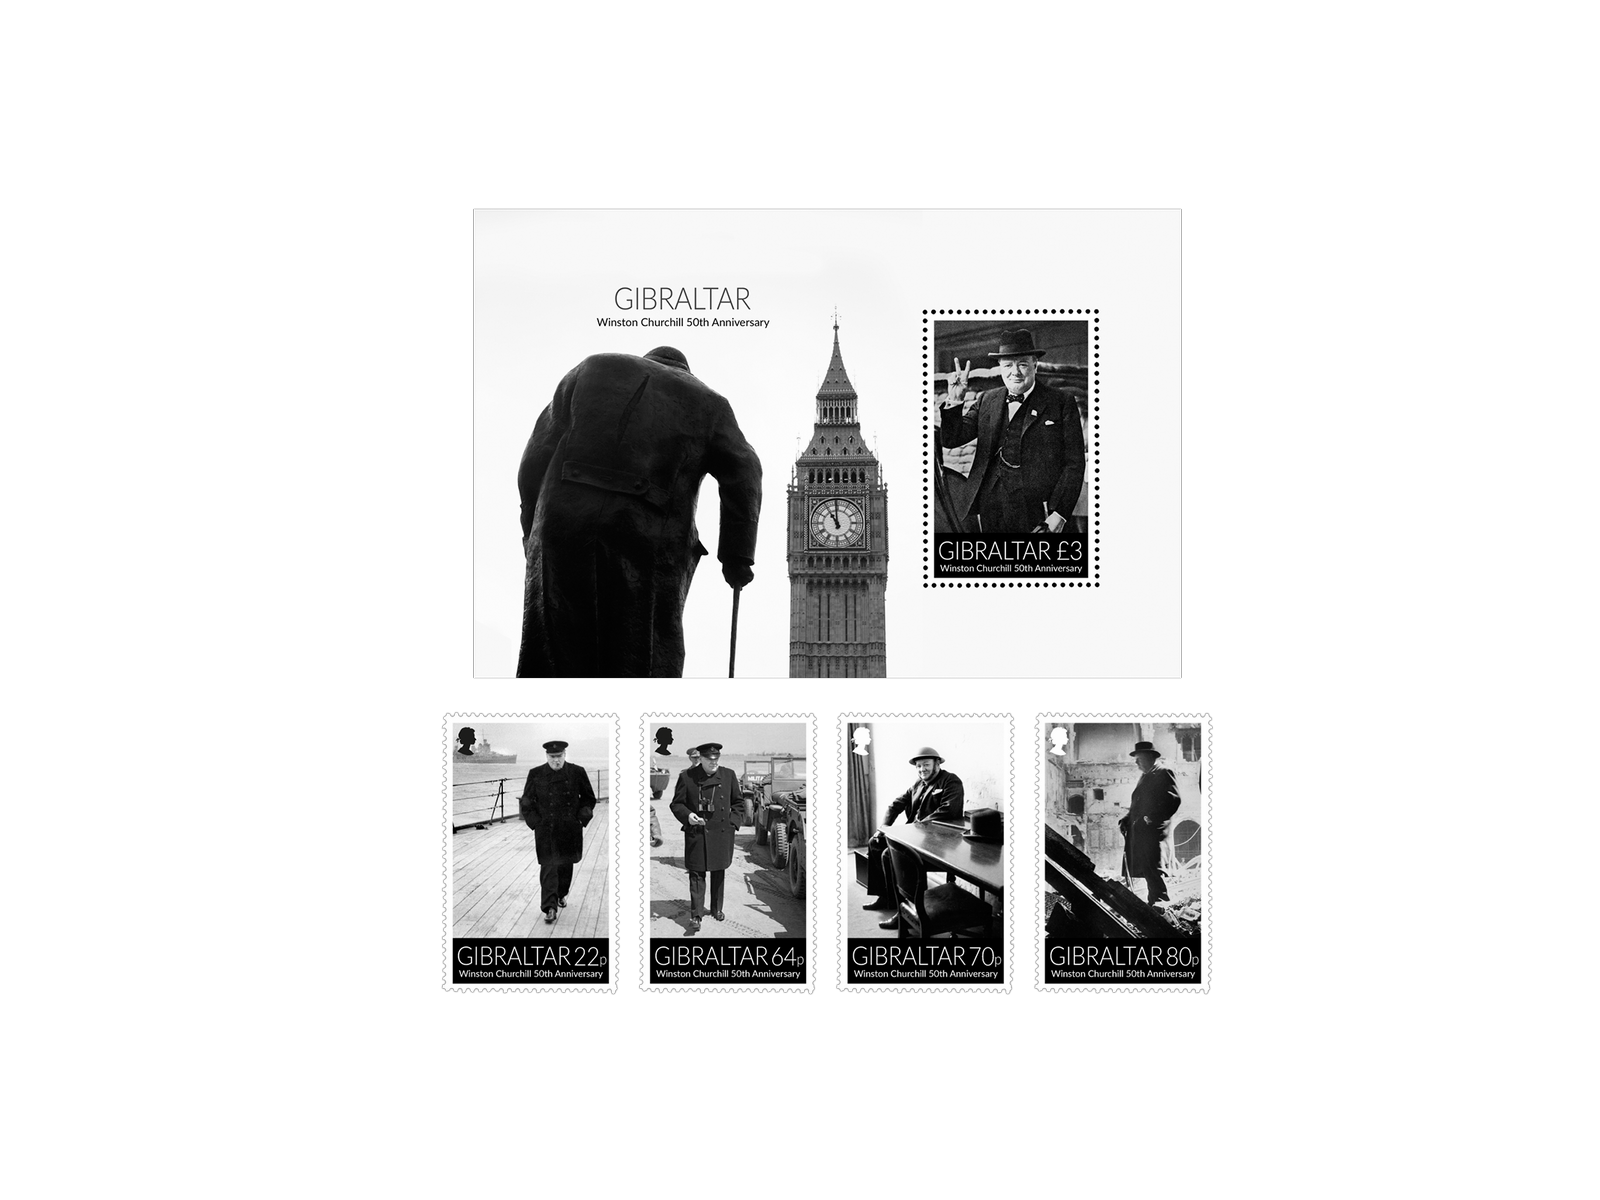 2015-Winston-Churchill-50th-Anniversary